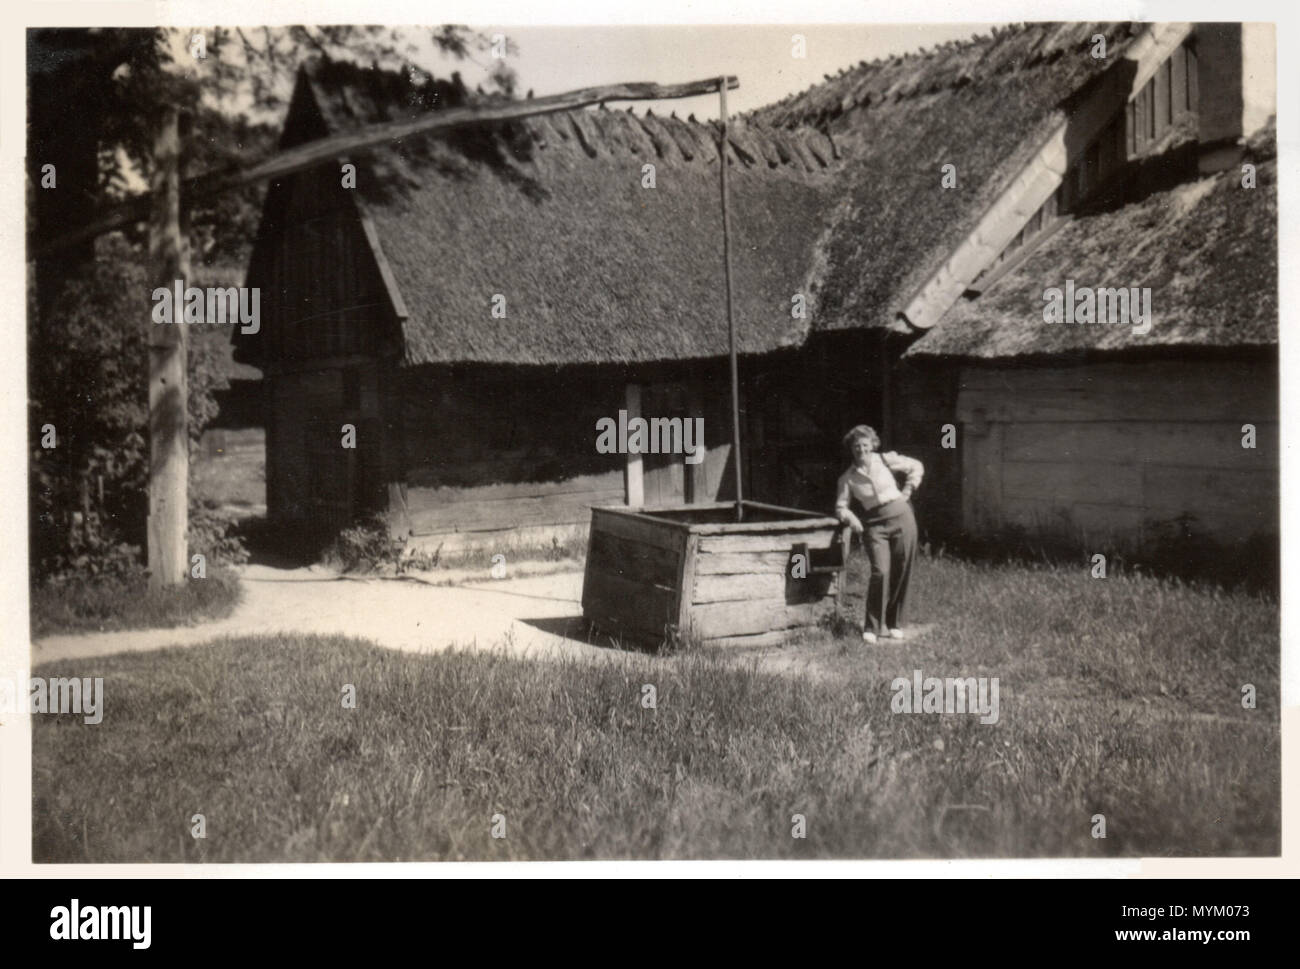 Woman poses by an old-fashioned counterbalance well by a thatched farmhouse near Odense on the island of Funen, Denmark.  Photograph made circa 1946 Stock Photo